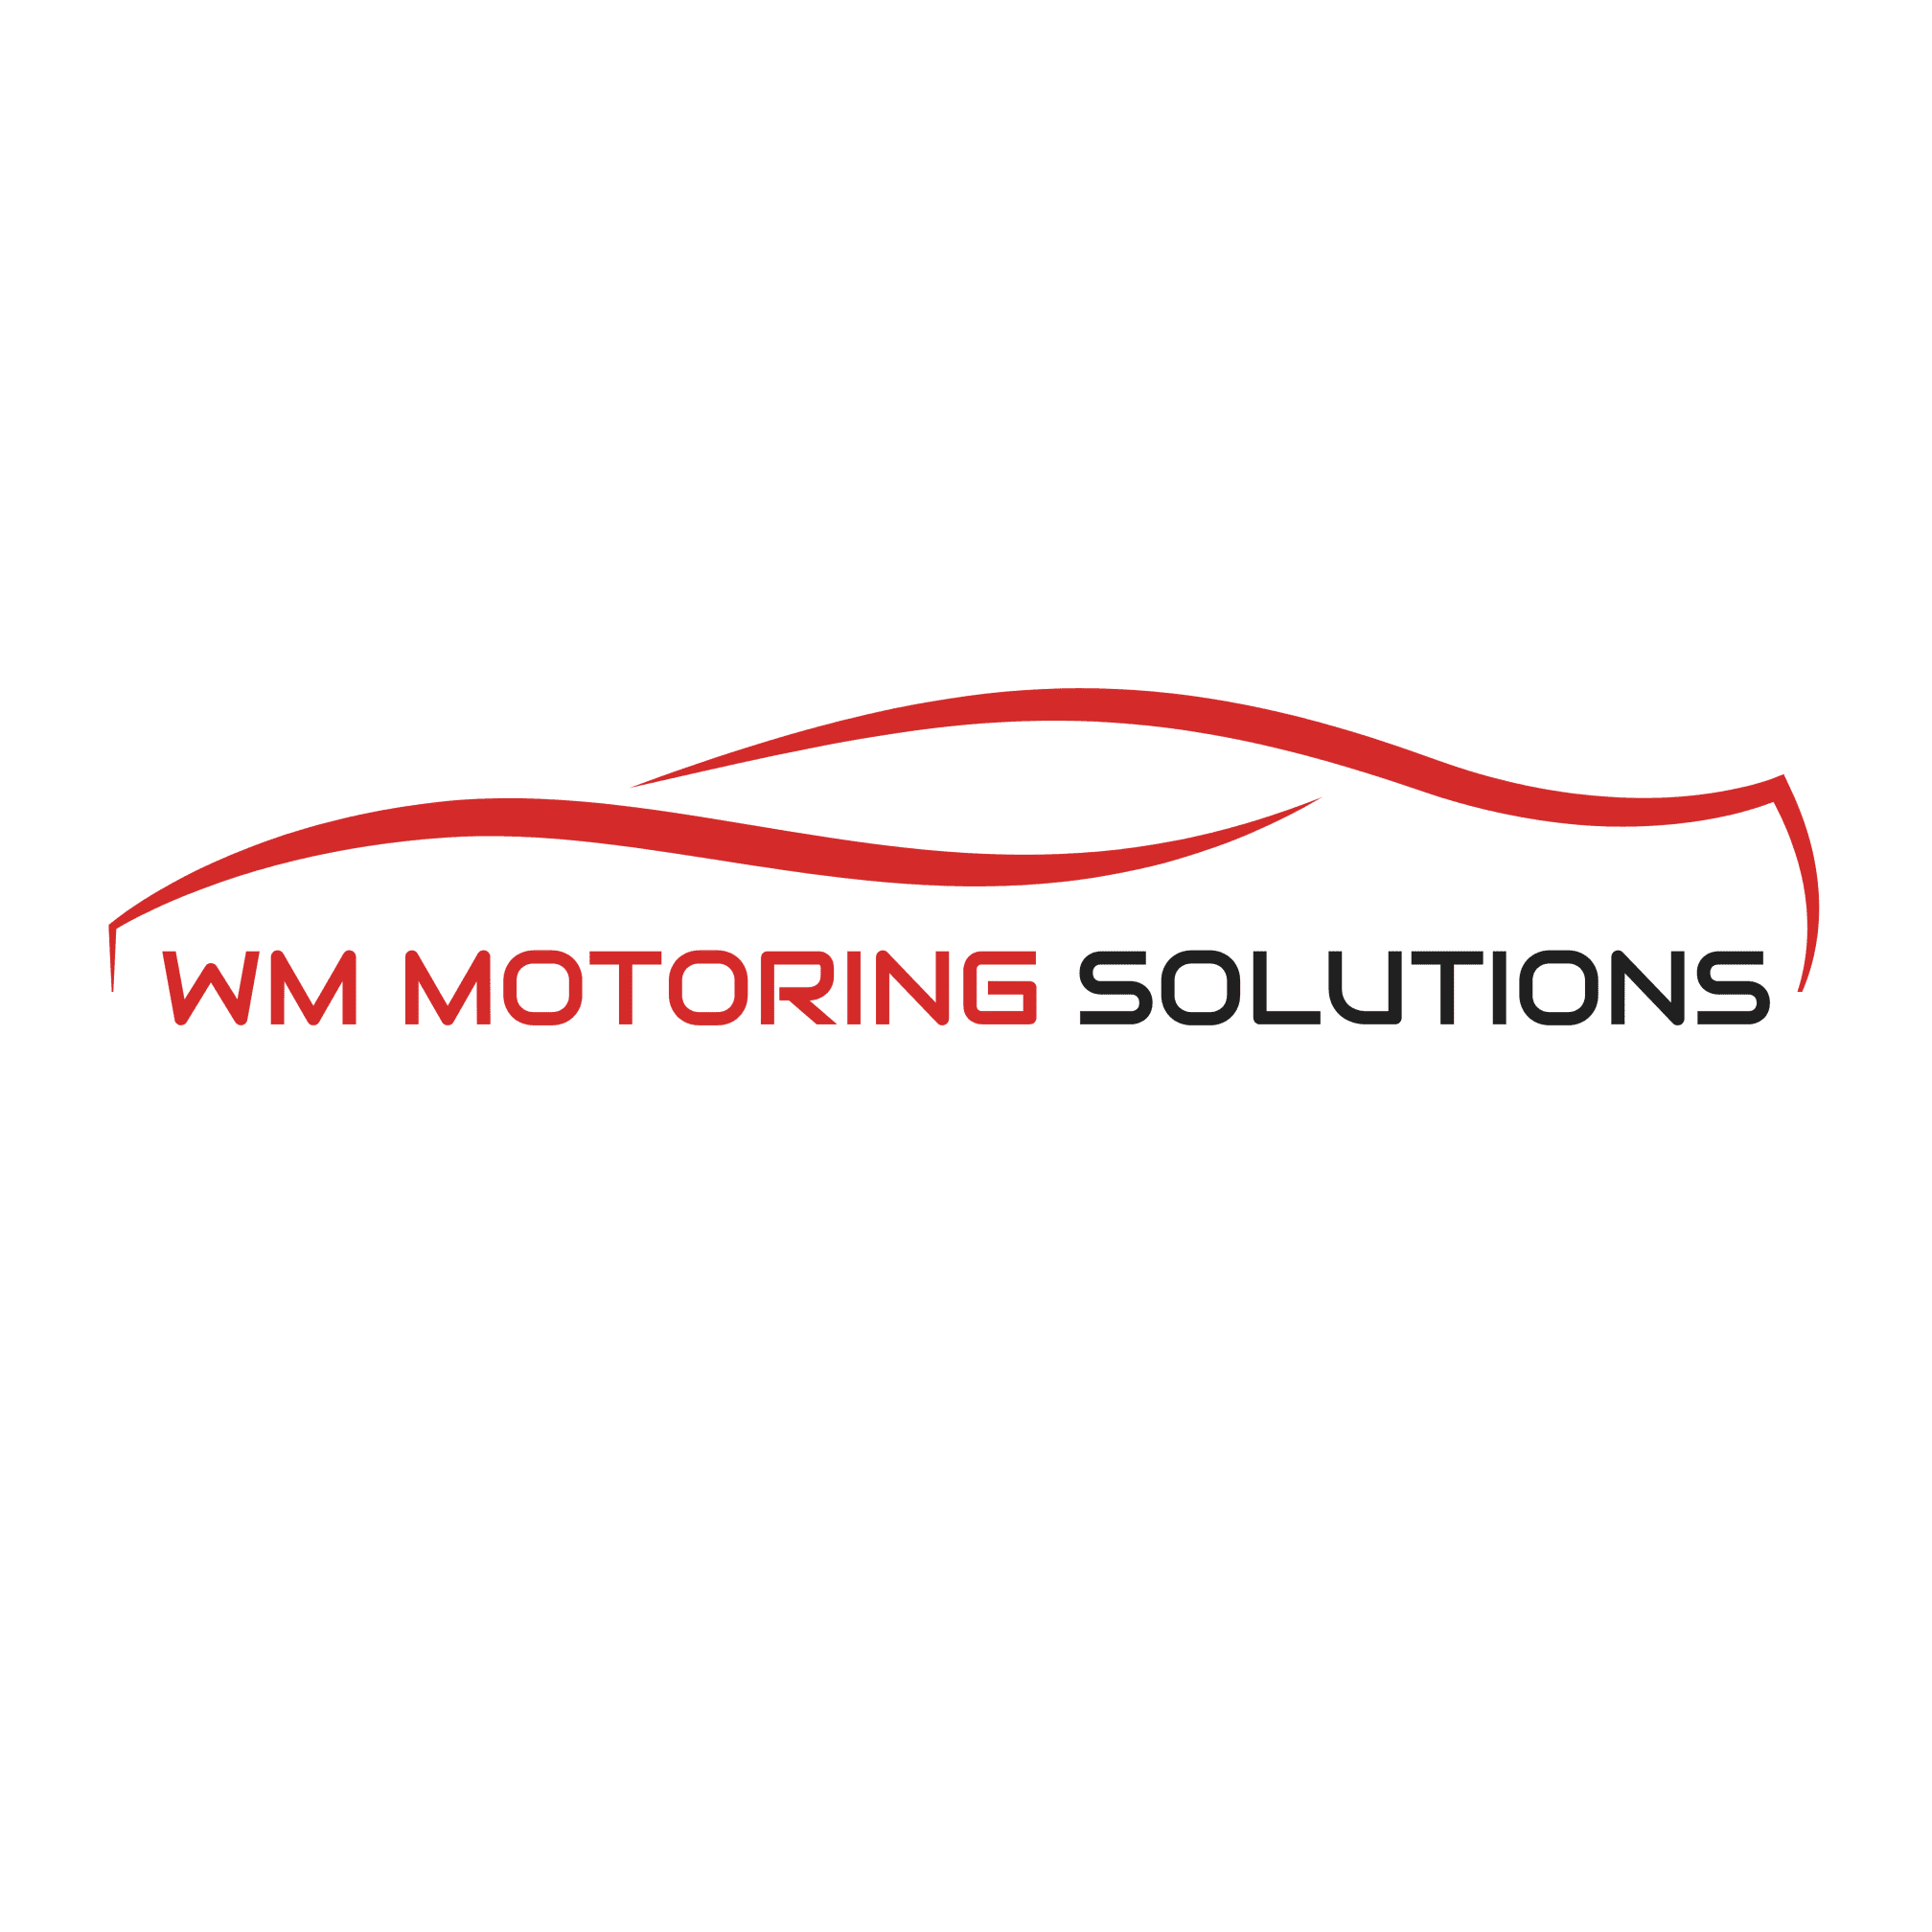 WM Motoring Solutions - Chatteris, Cambridgeshire PE16 6TP - 07908 720989 | ShowMeLocal.com